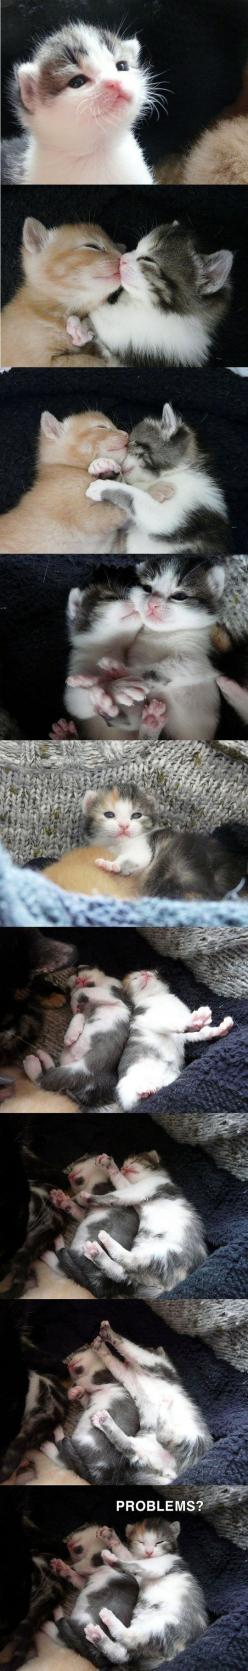 Cute Overload. they remind me of my kitties when they were little especially the black and white one: Kitty Cats, Kitty Kitty, Adorable, Kittens Cats, Baby Kitty, Box Pies, Animal